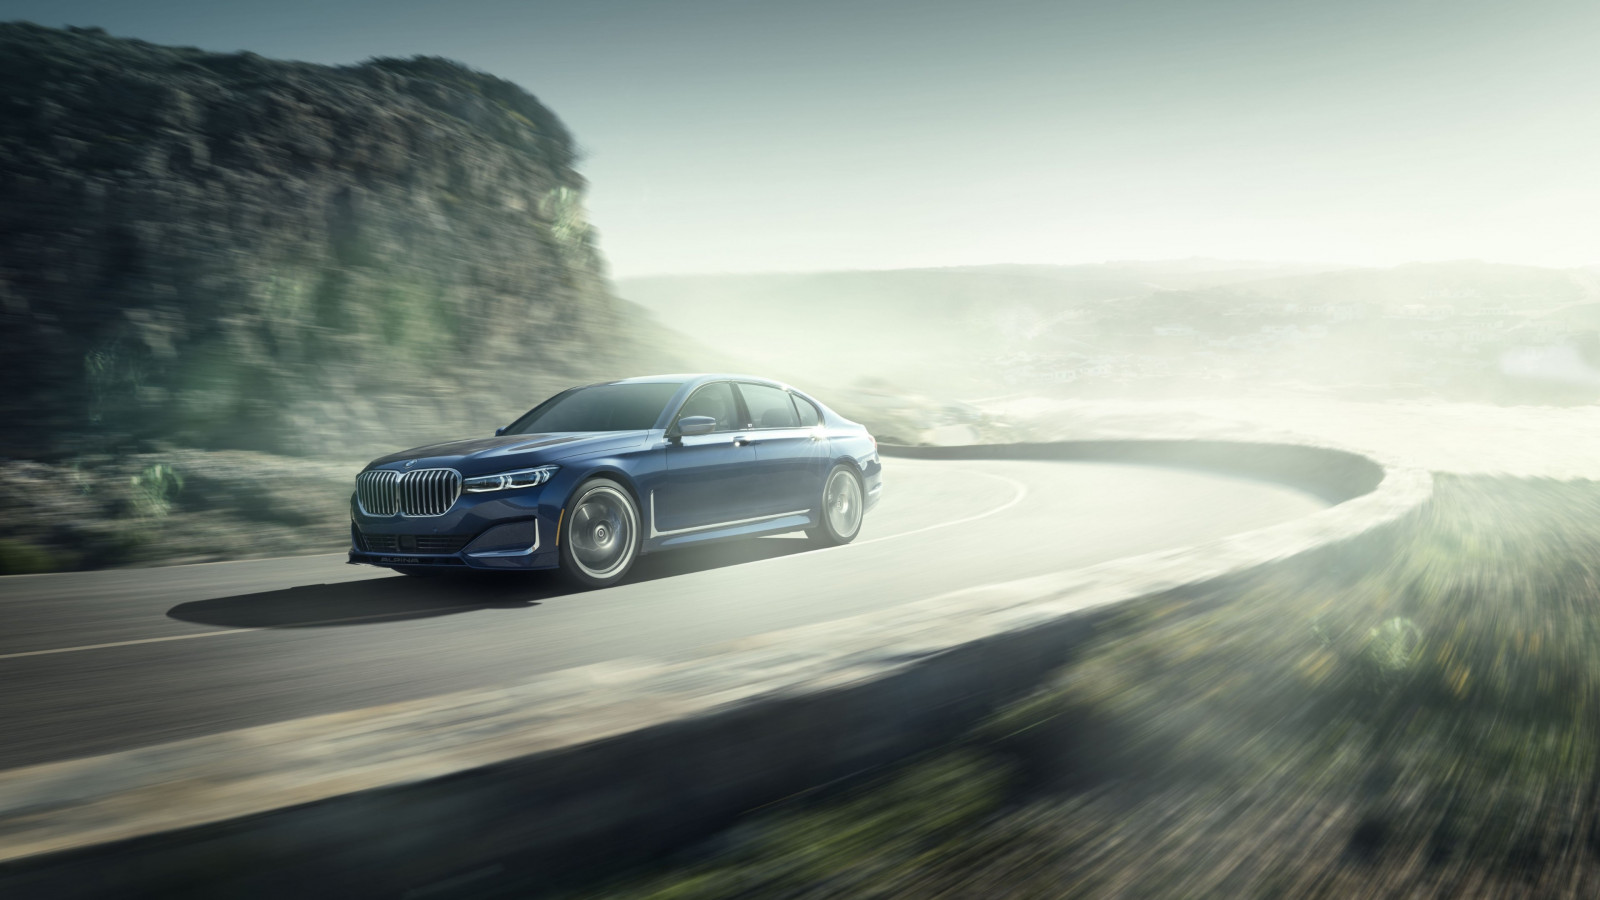 BMW Alpina B7 2019 wallpaper 1600x900